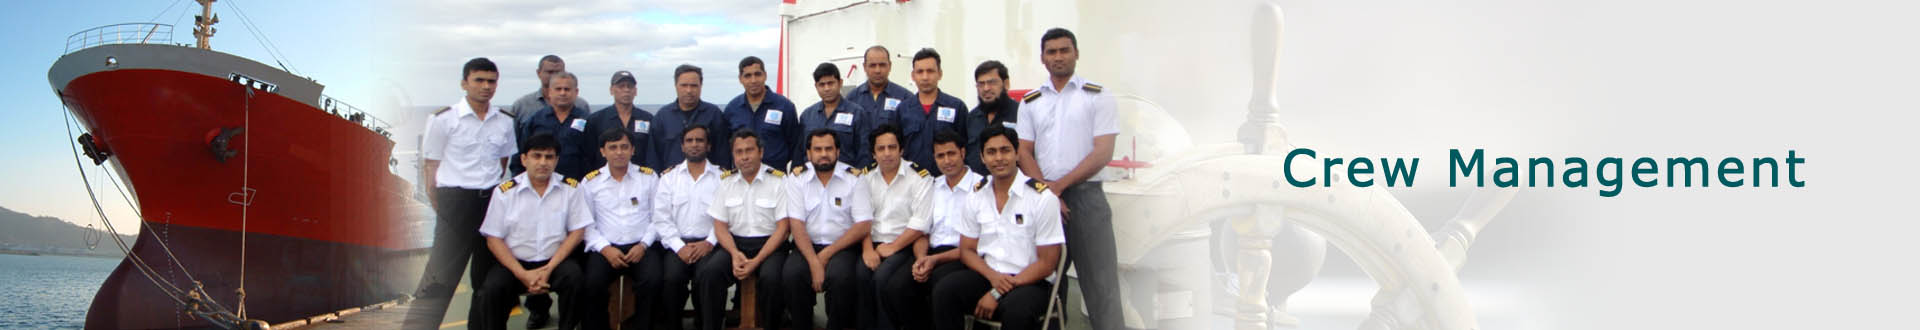 Largest Crew Manning Agency in Bangladesh